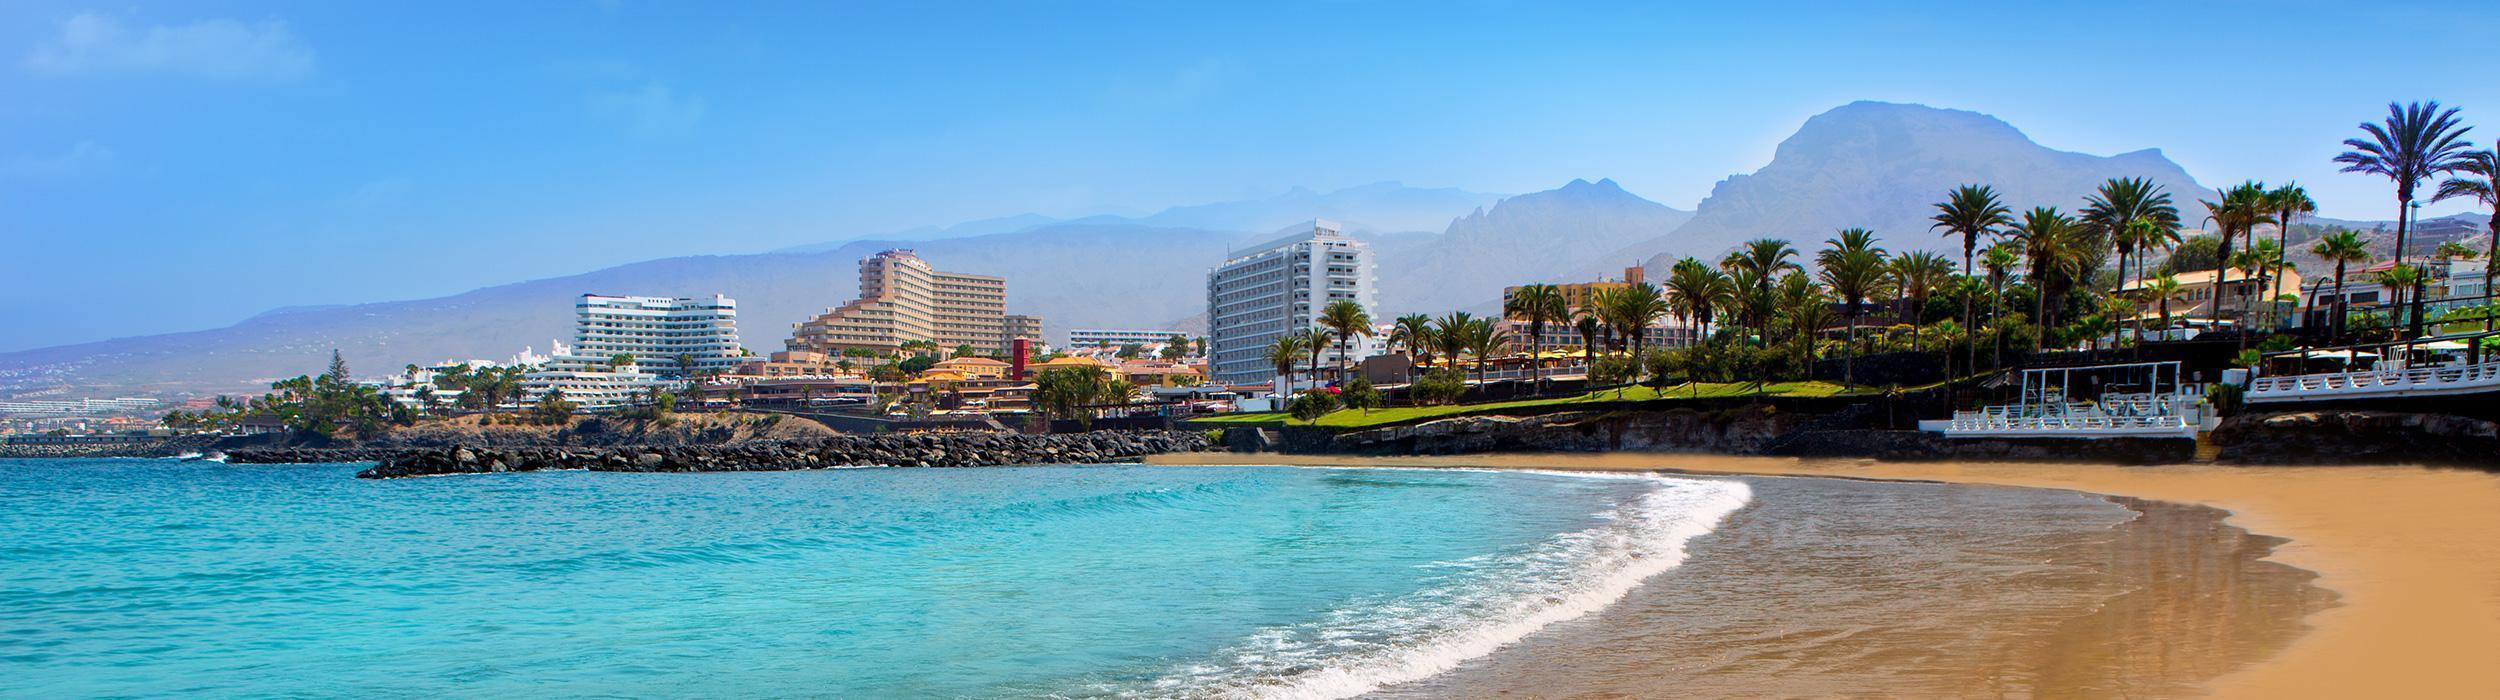 TENERIFE WINTER 2020 COMING SOON - SIGN UP TO BE THE FIRST TO KNOW MORE!